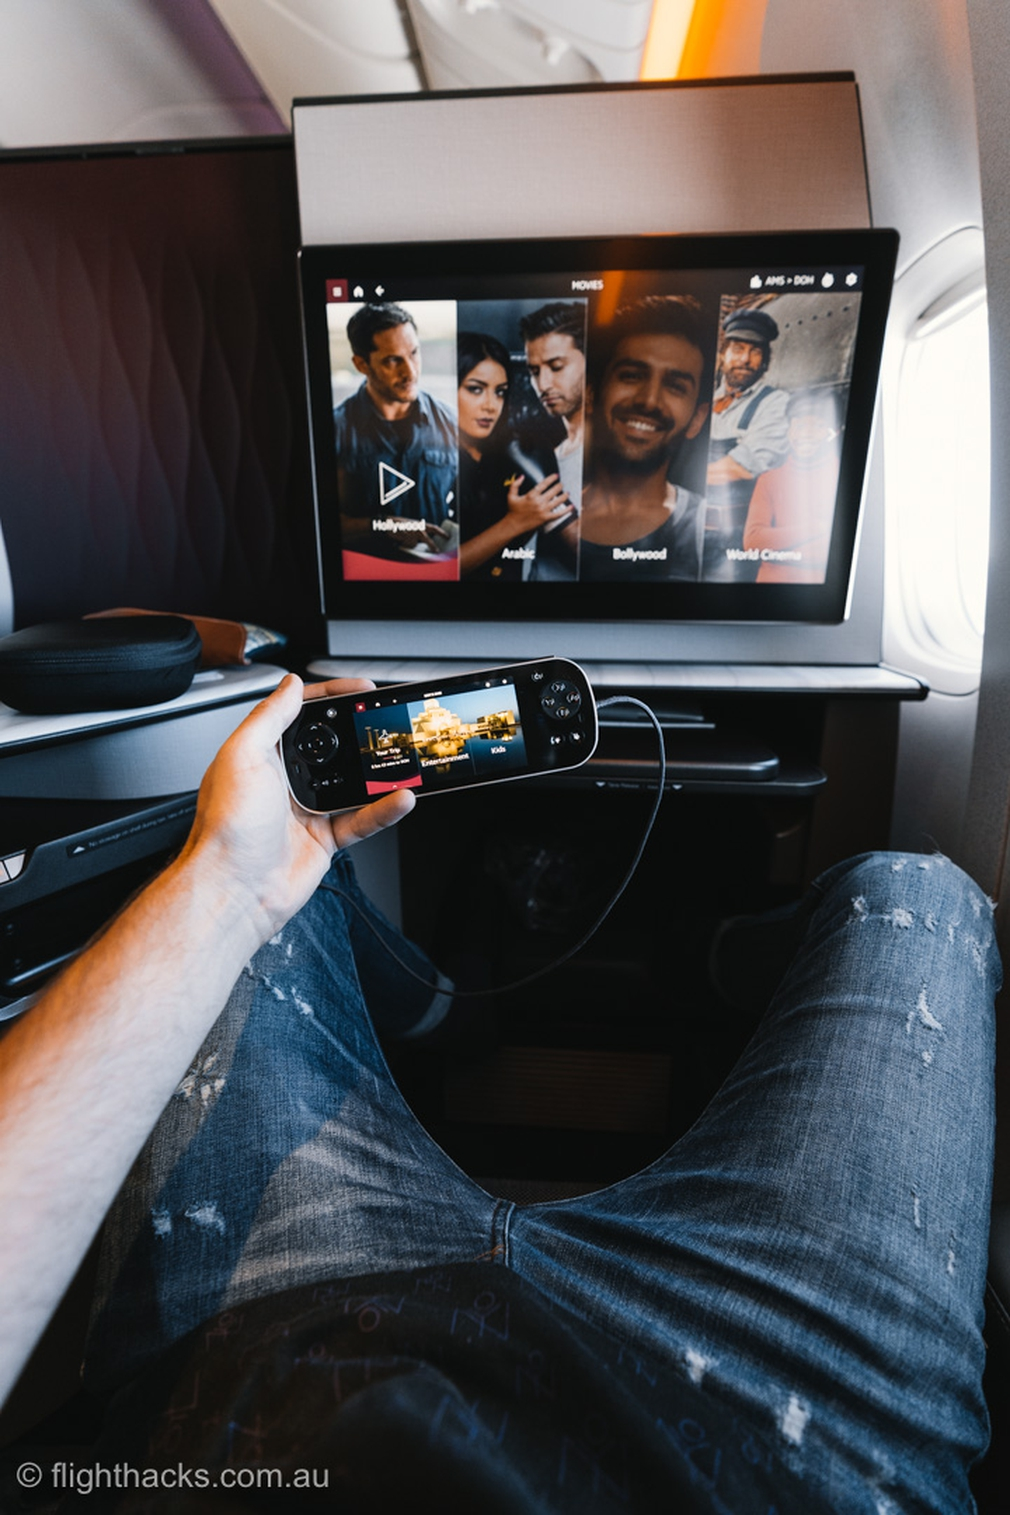 Qatar Airways Qsuite In-flight entertainment